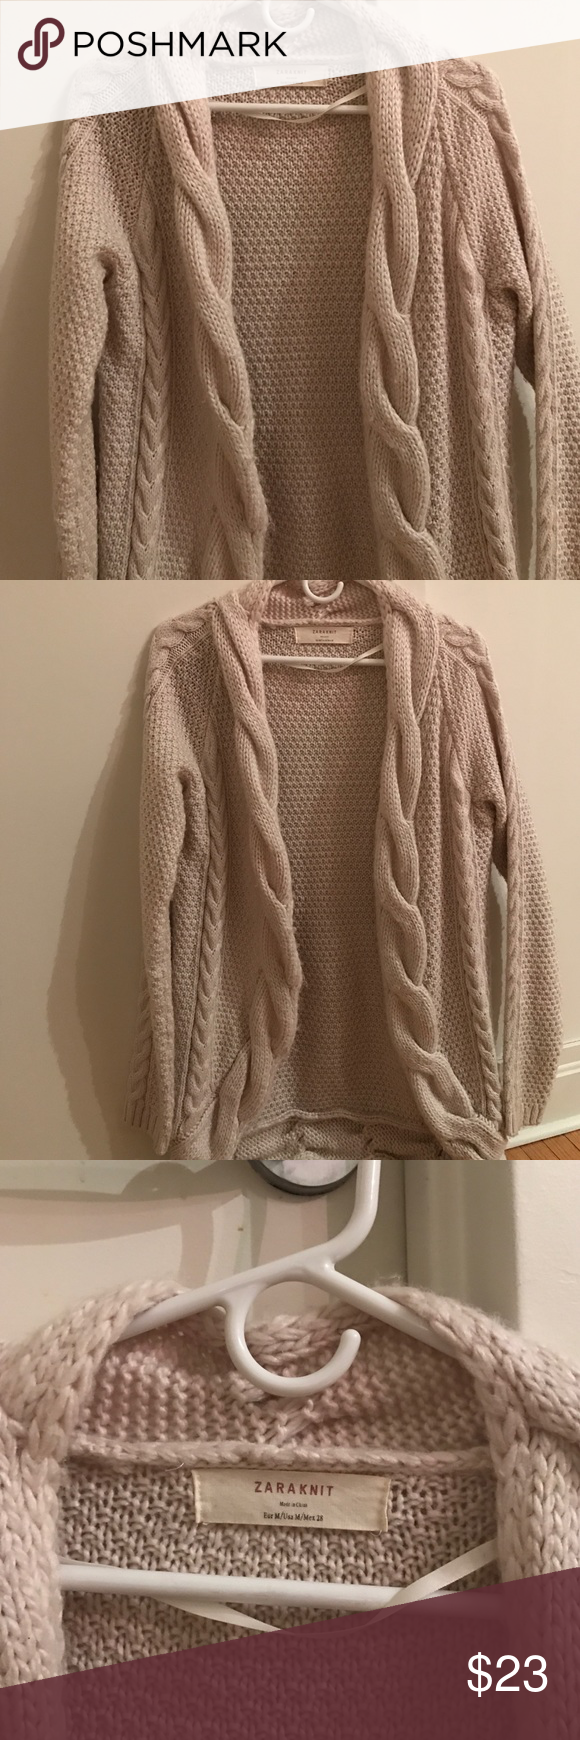 Zara Knit Open Sweater | Ea, Customer support and Delivery